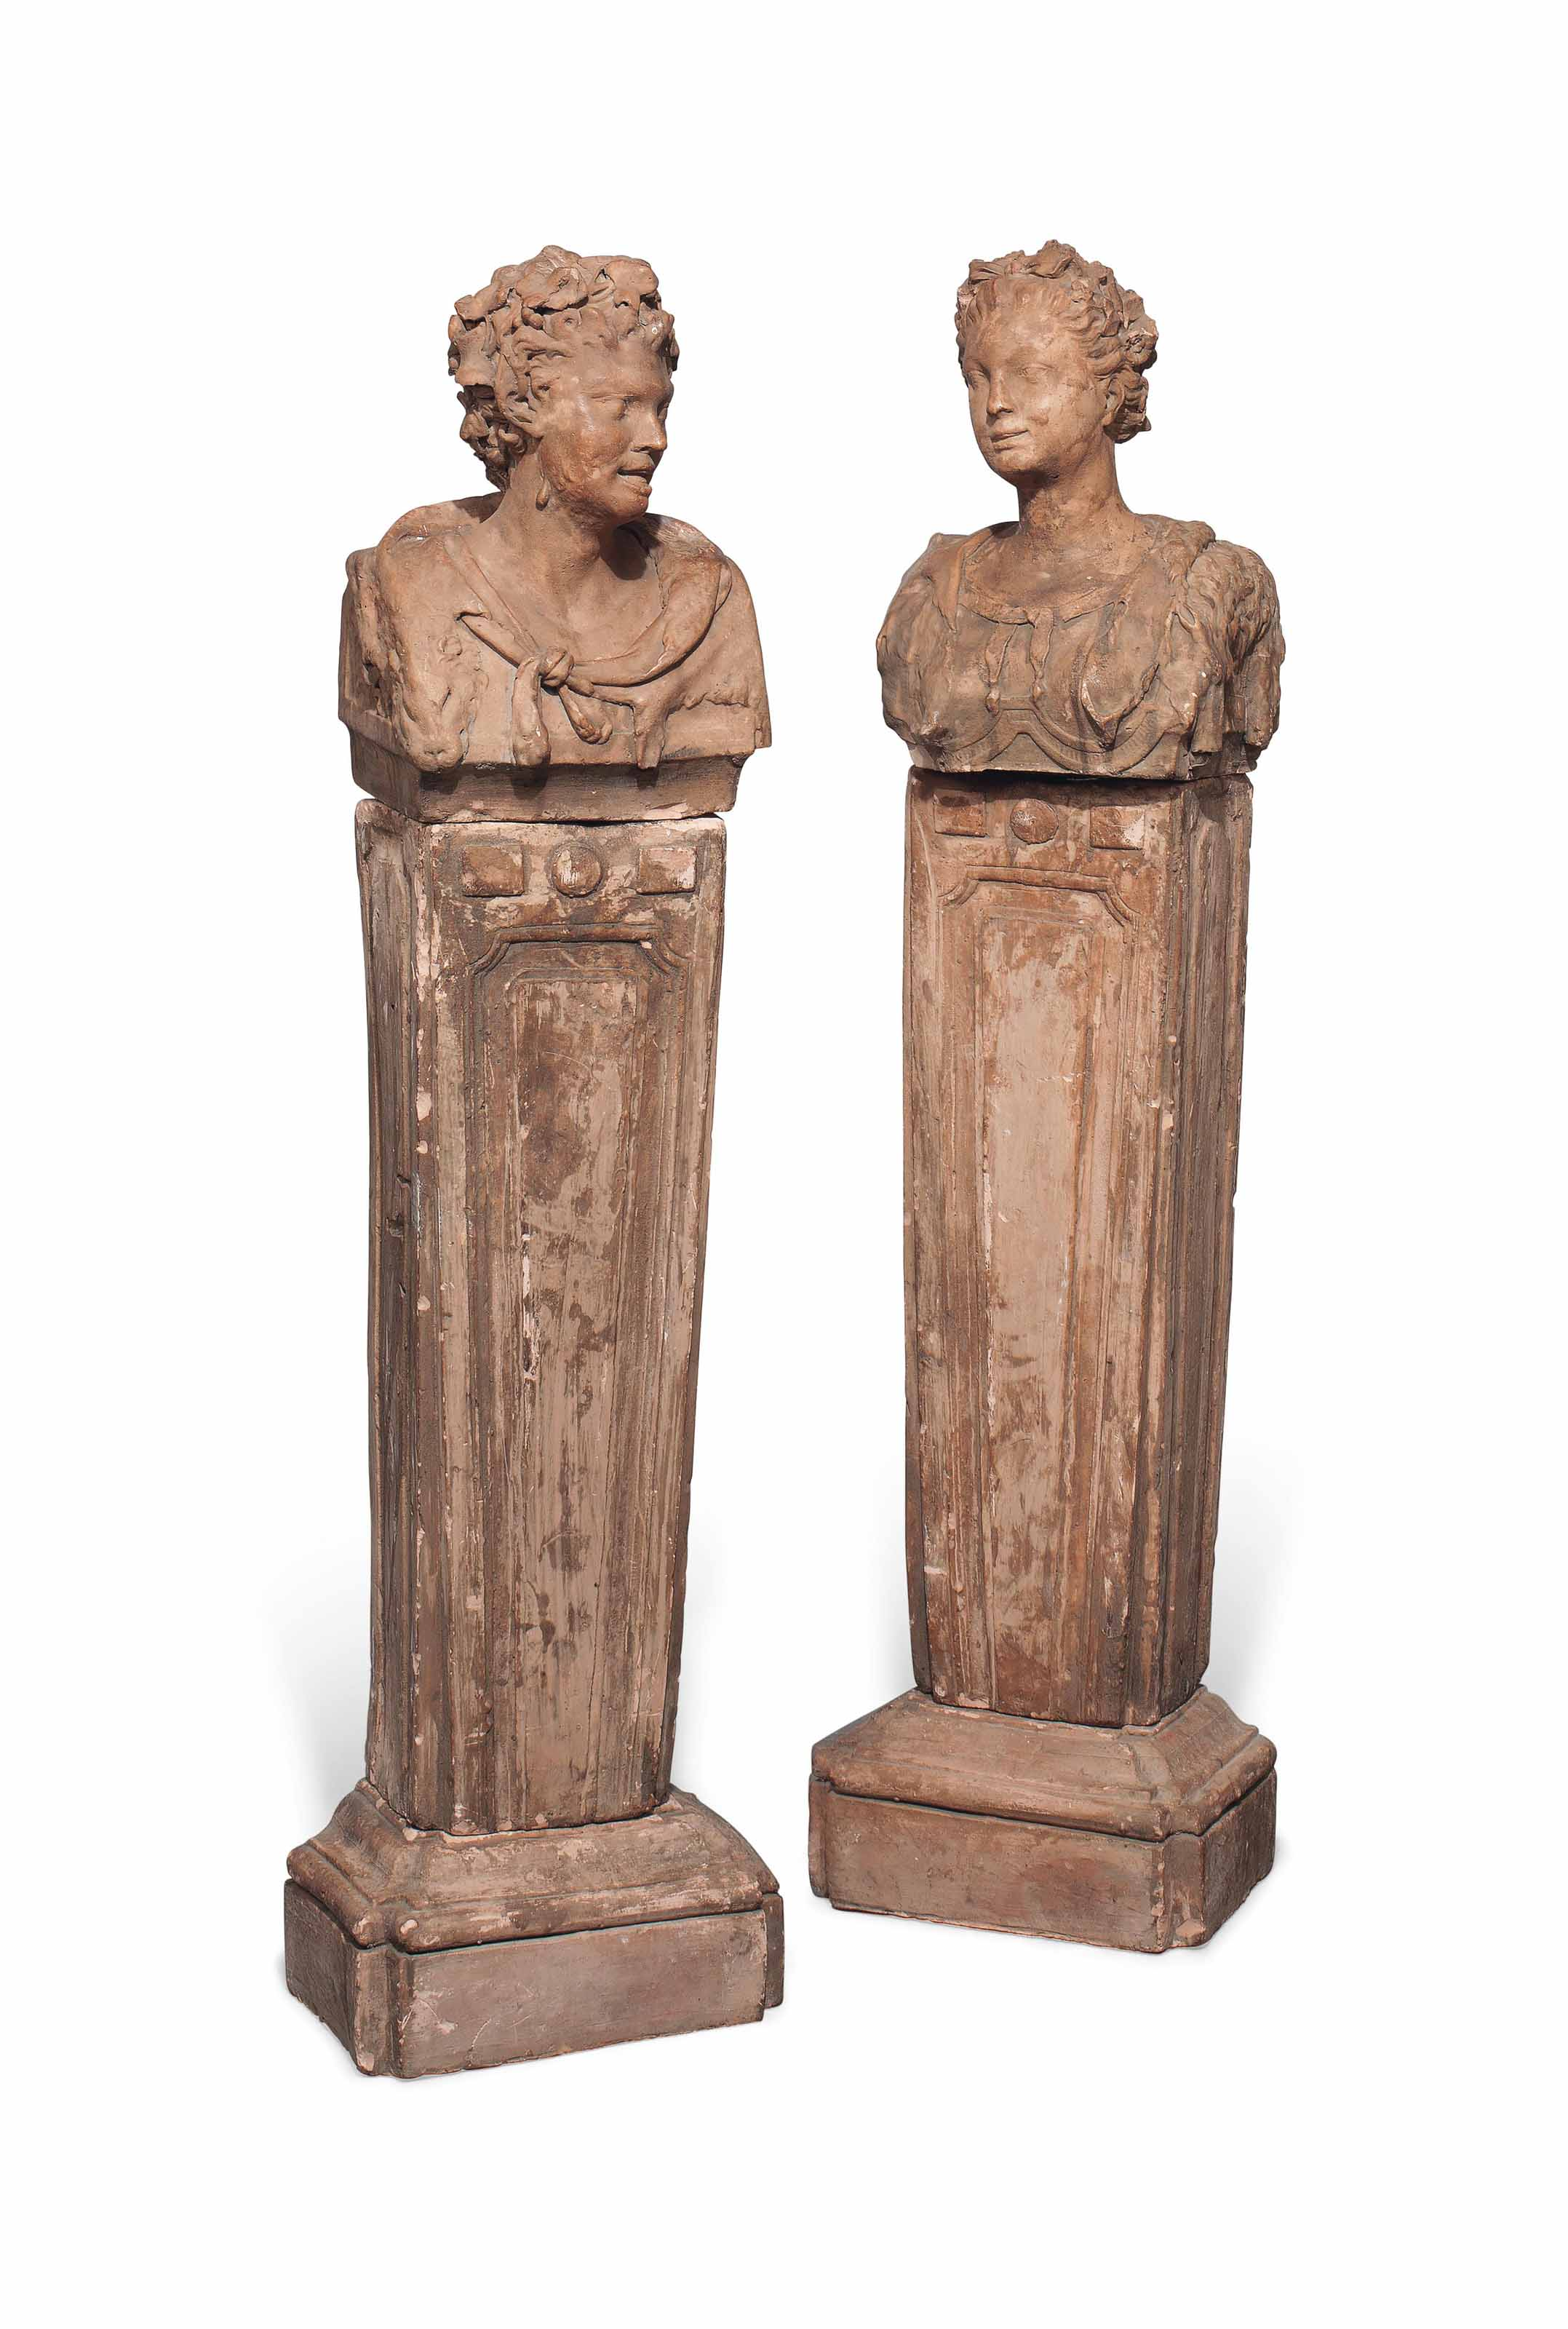 A PAIR OF TERRACOTTA  BUSTS OF